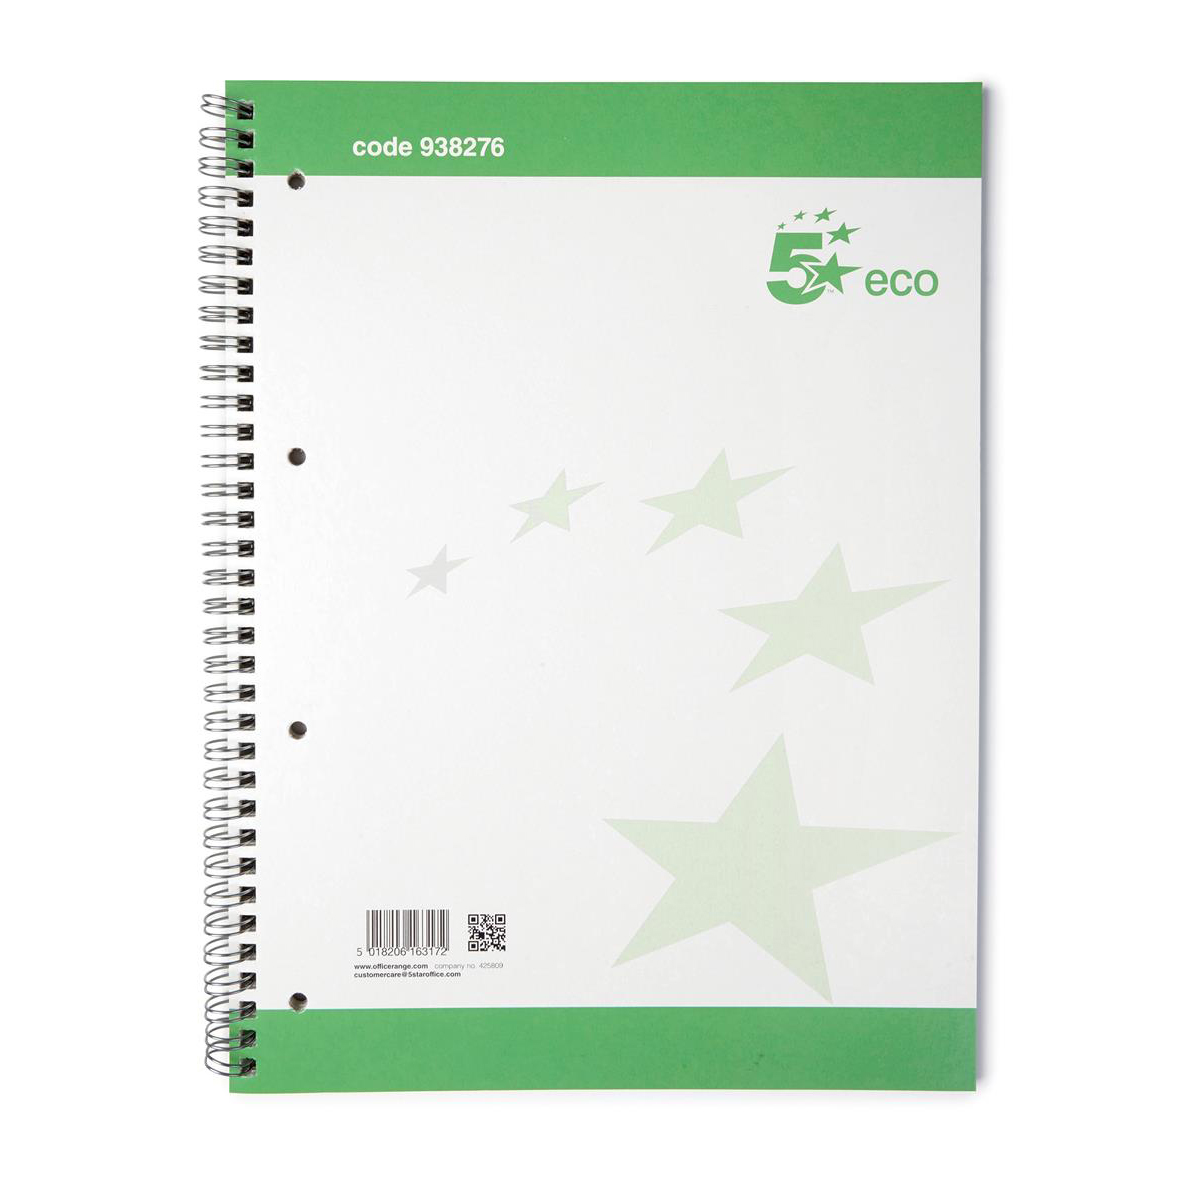 Paper pads or notebooks 5 Star Eco Spiral Pad 70gsm Ruled Margin Perforated Punched 4 Holes 100pp A4+ Pack 10